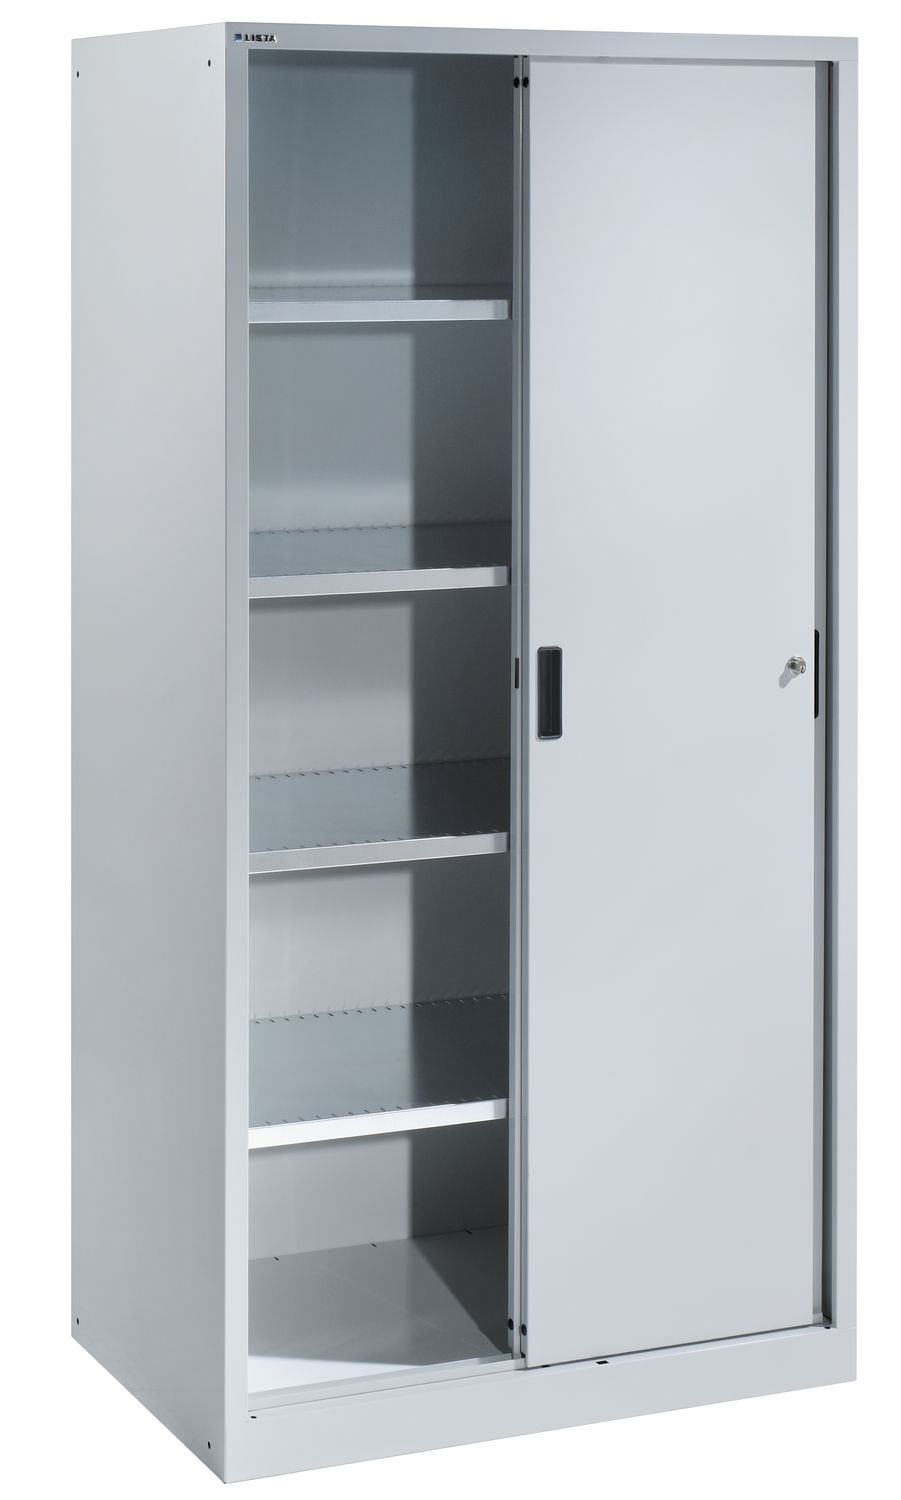 Awe Inspiring Storage Cabinets With Doors Also Adjustable Metal With Large Cupboard With Shelves (Image 4 of 25)